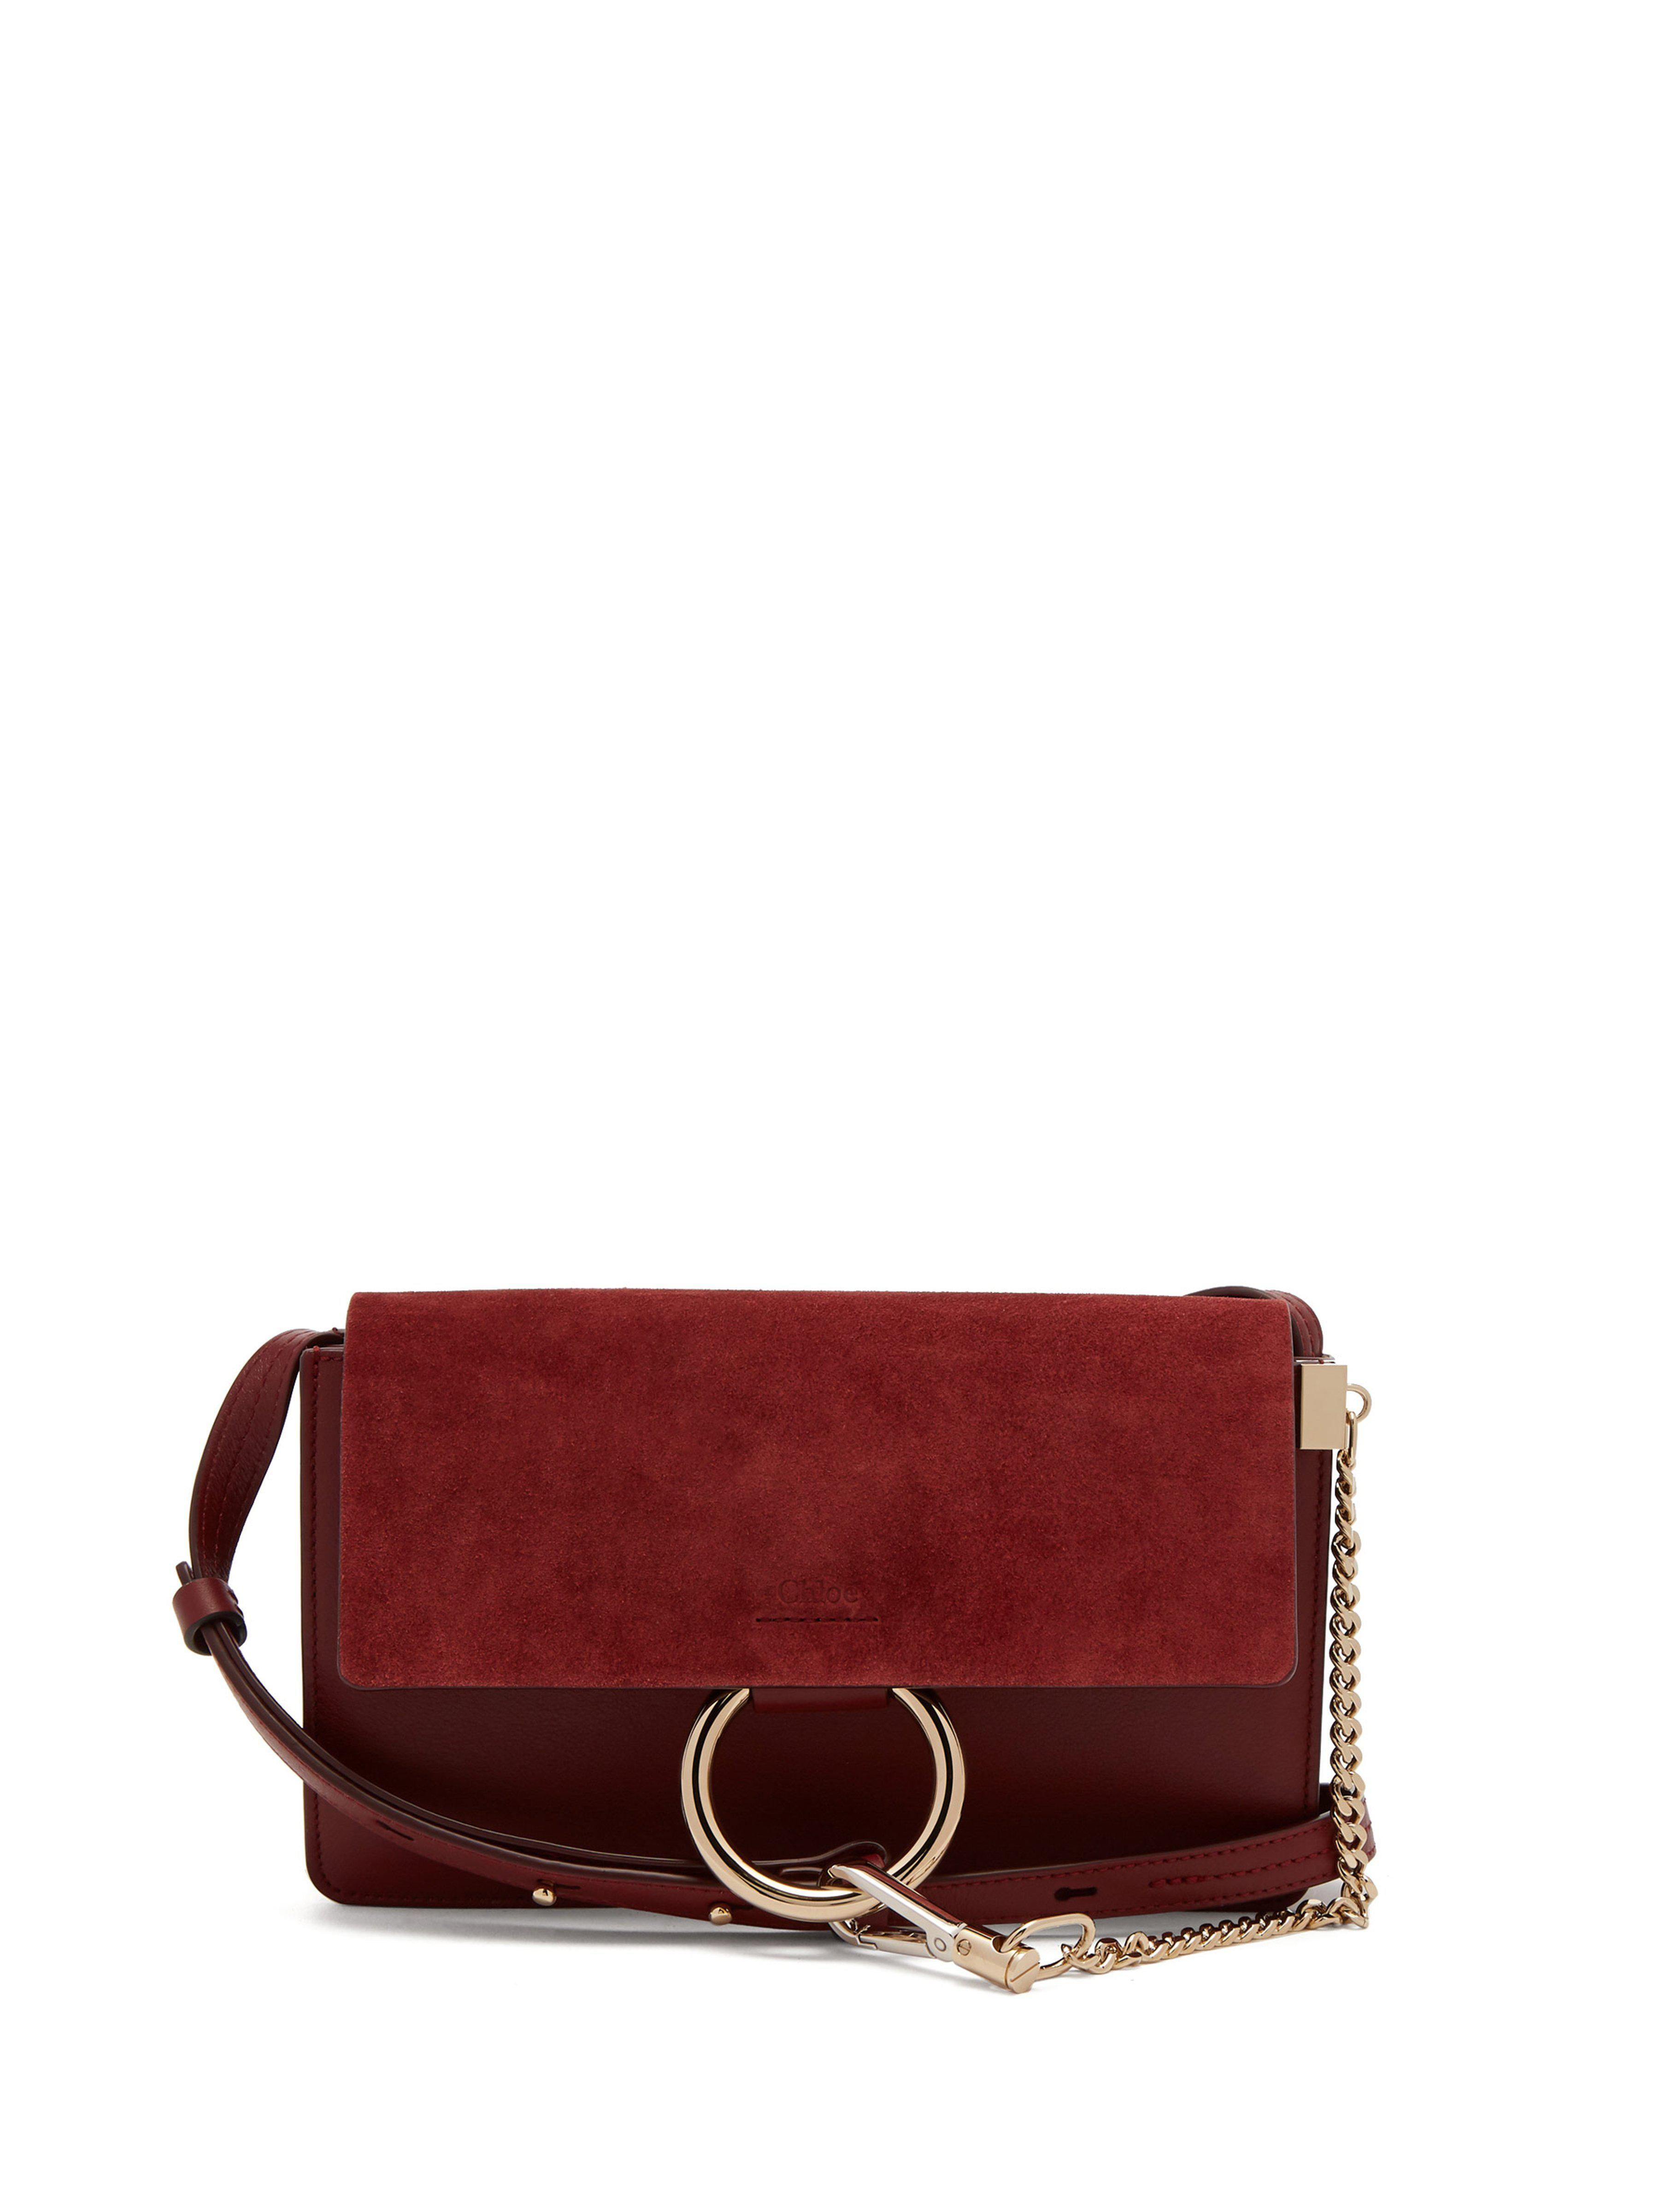 409ba9b1cc Women's Red Faye Mini Suede And Leather Shoulder Bag in 2019 ...